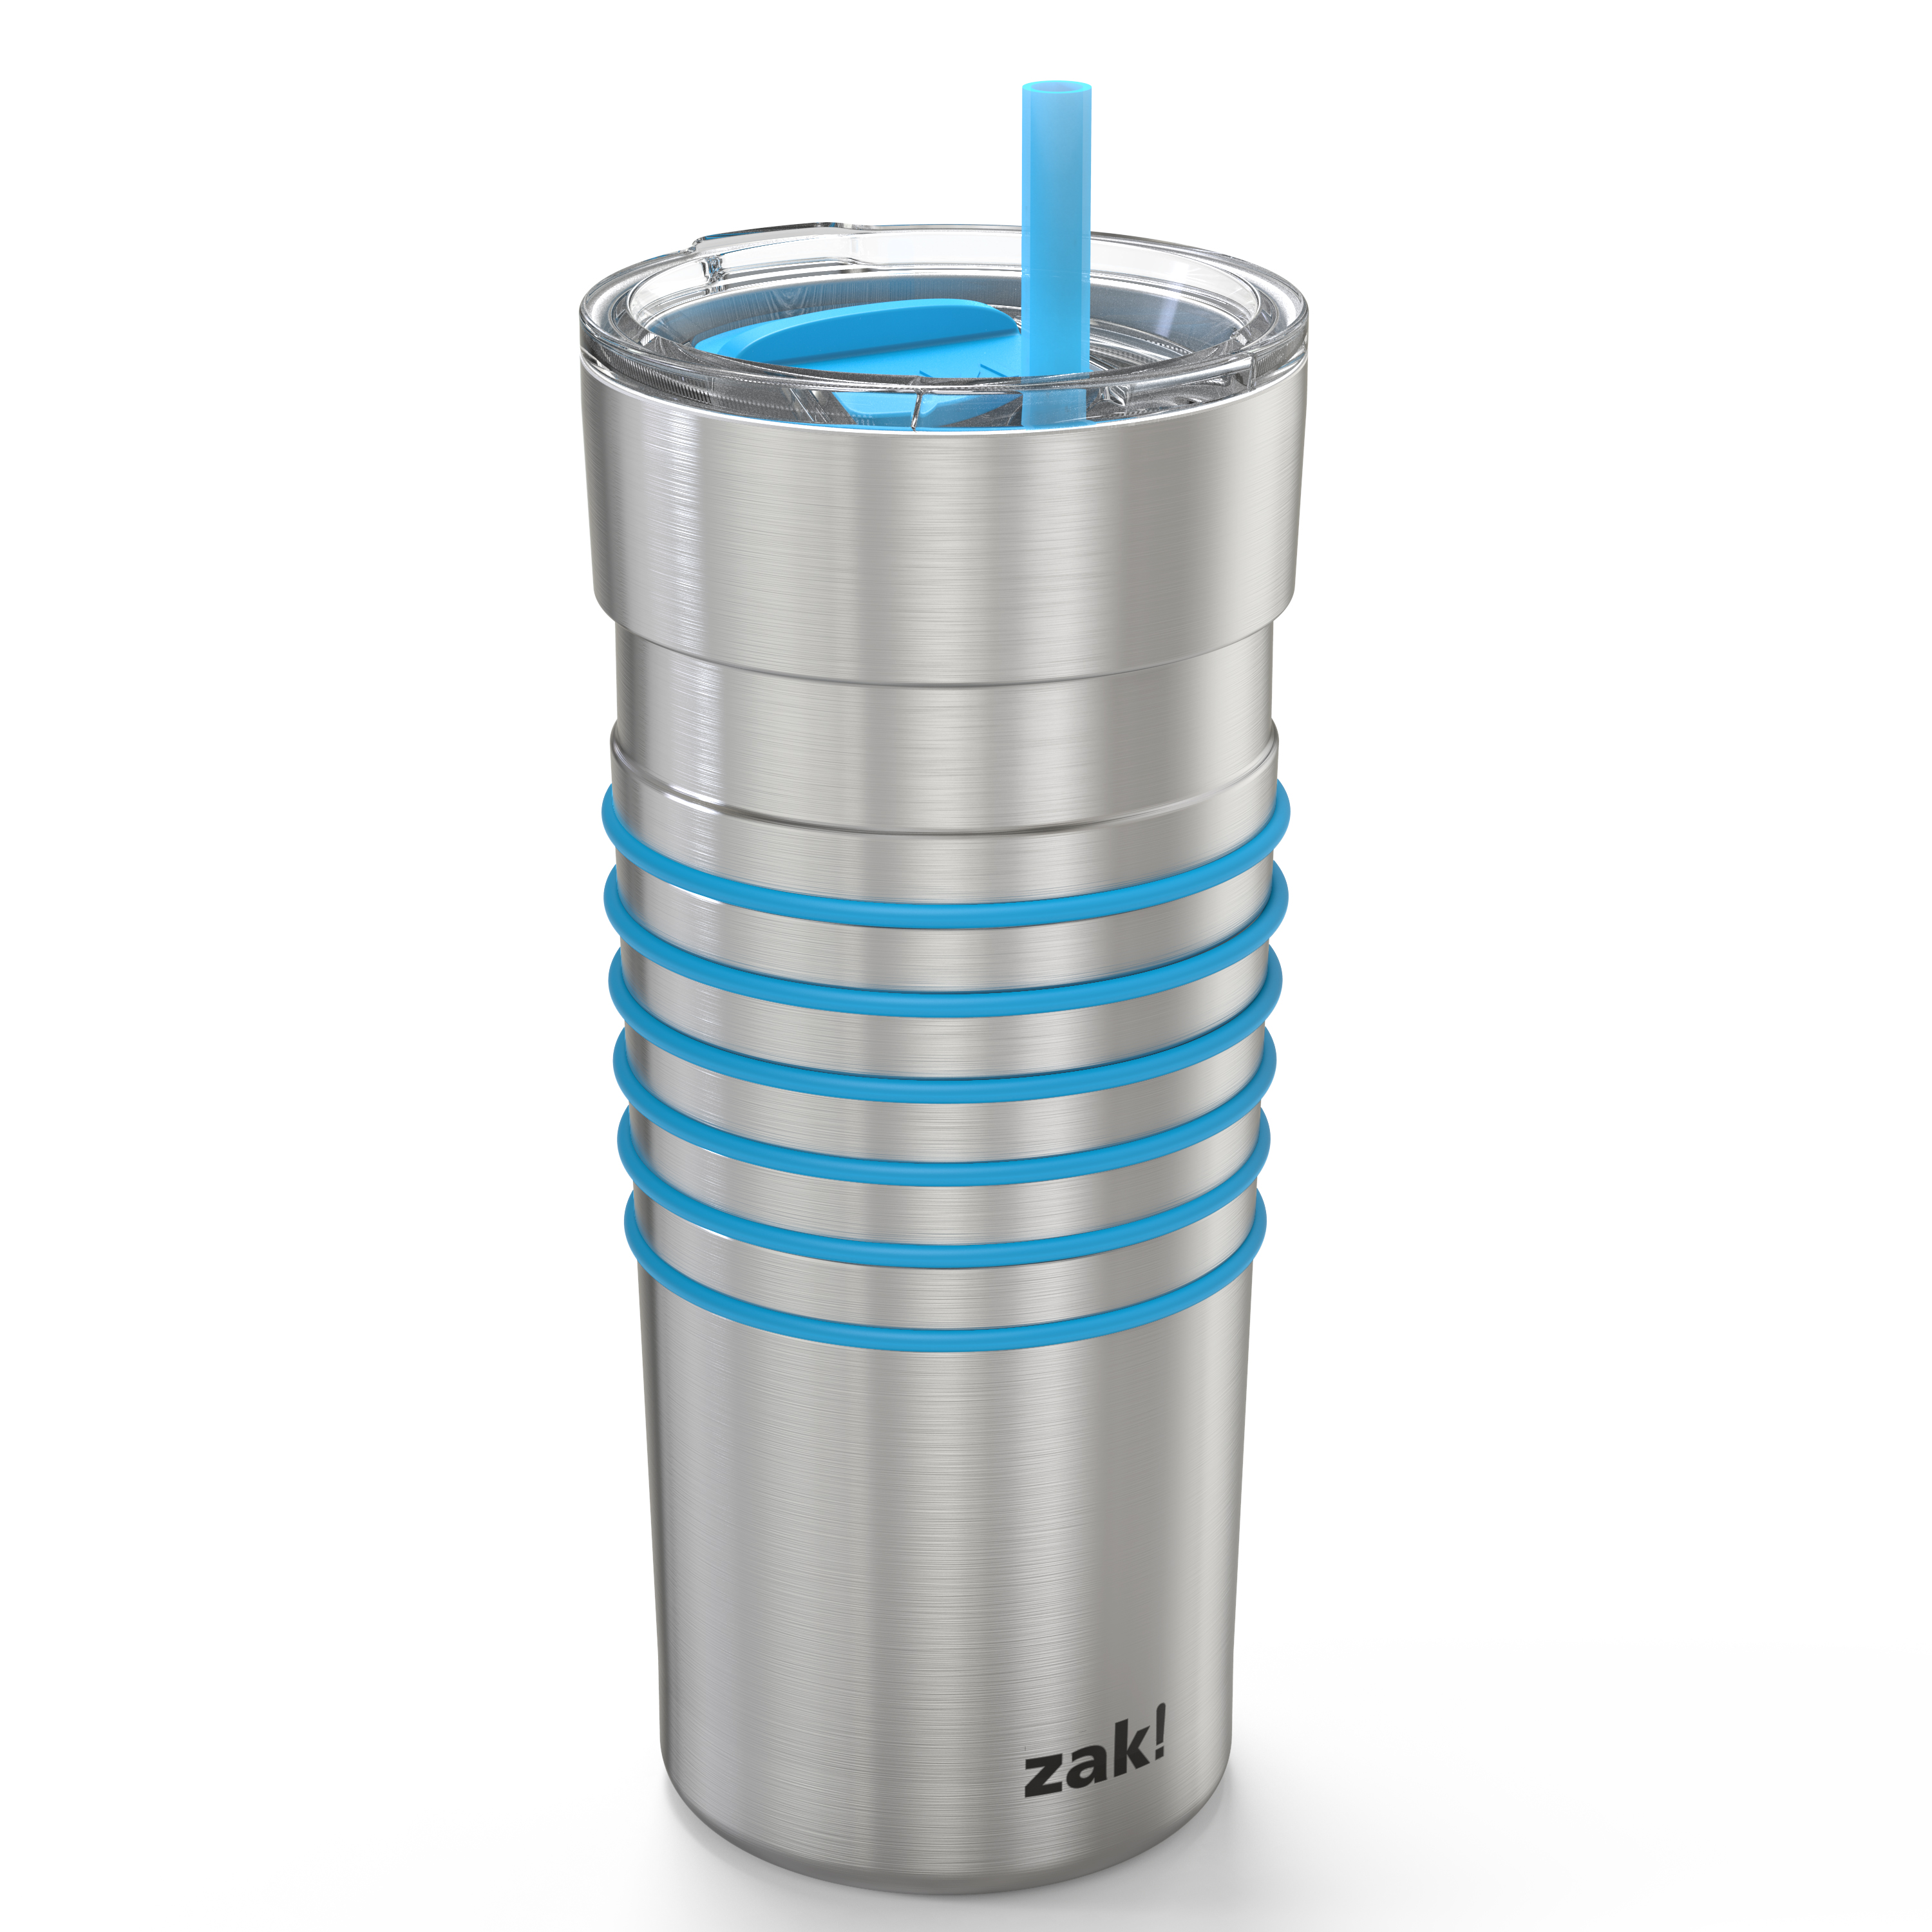 HydraTrak 20 ounce Vacuum Insulated Stainless Steel Tumbler, Stainless Steel with Blue Rings slideshow image 1